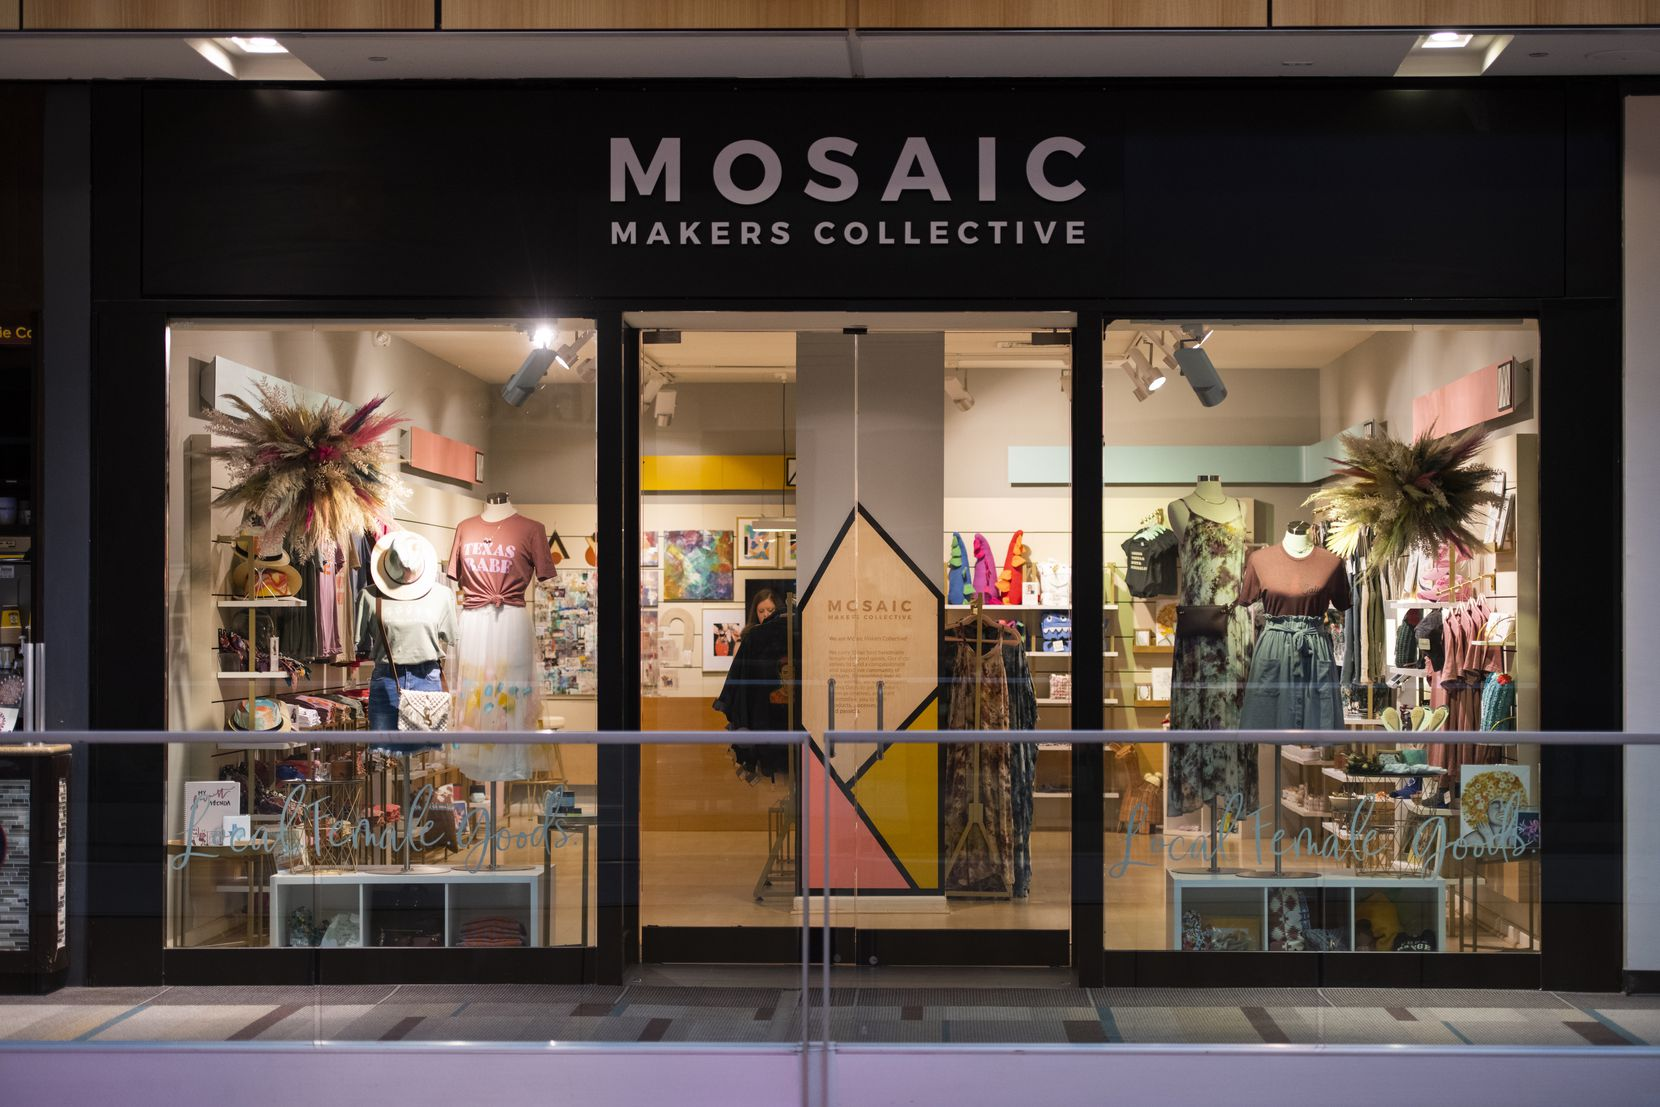 Mosaic Makers Collective features works from 45 Texas women and opened in July at Galleria Dallas on Level 2. This is the second location for the collective. The first one opened in Dallas Bishop Arts District in 2018.